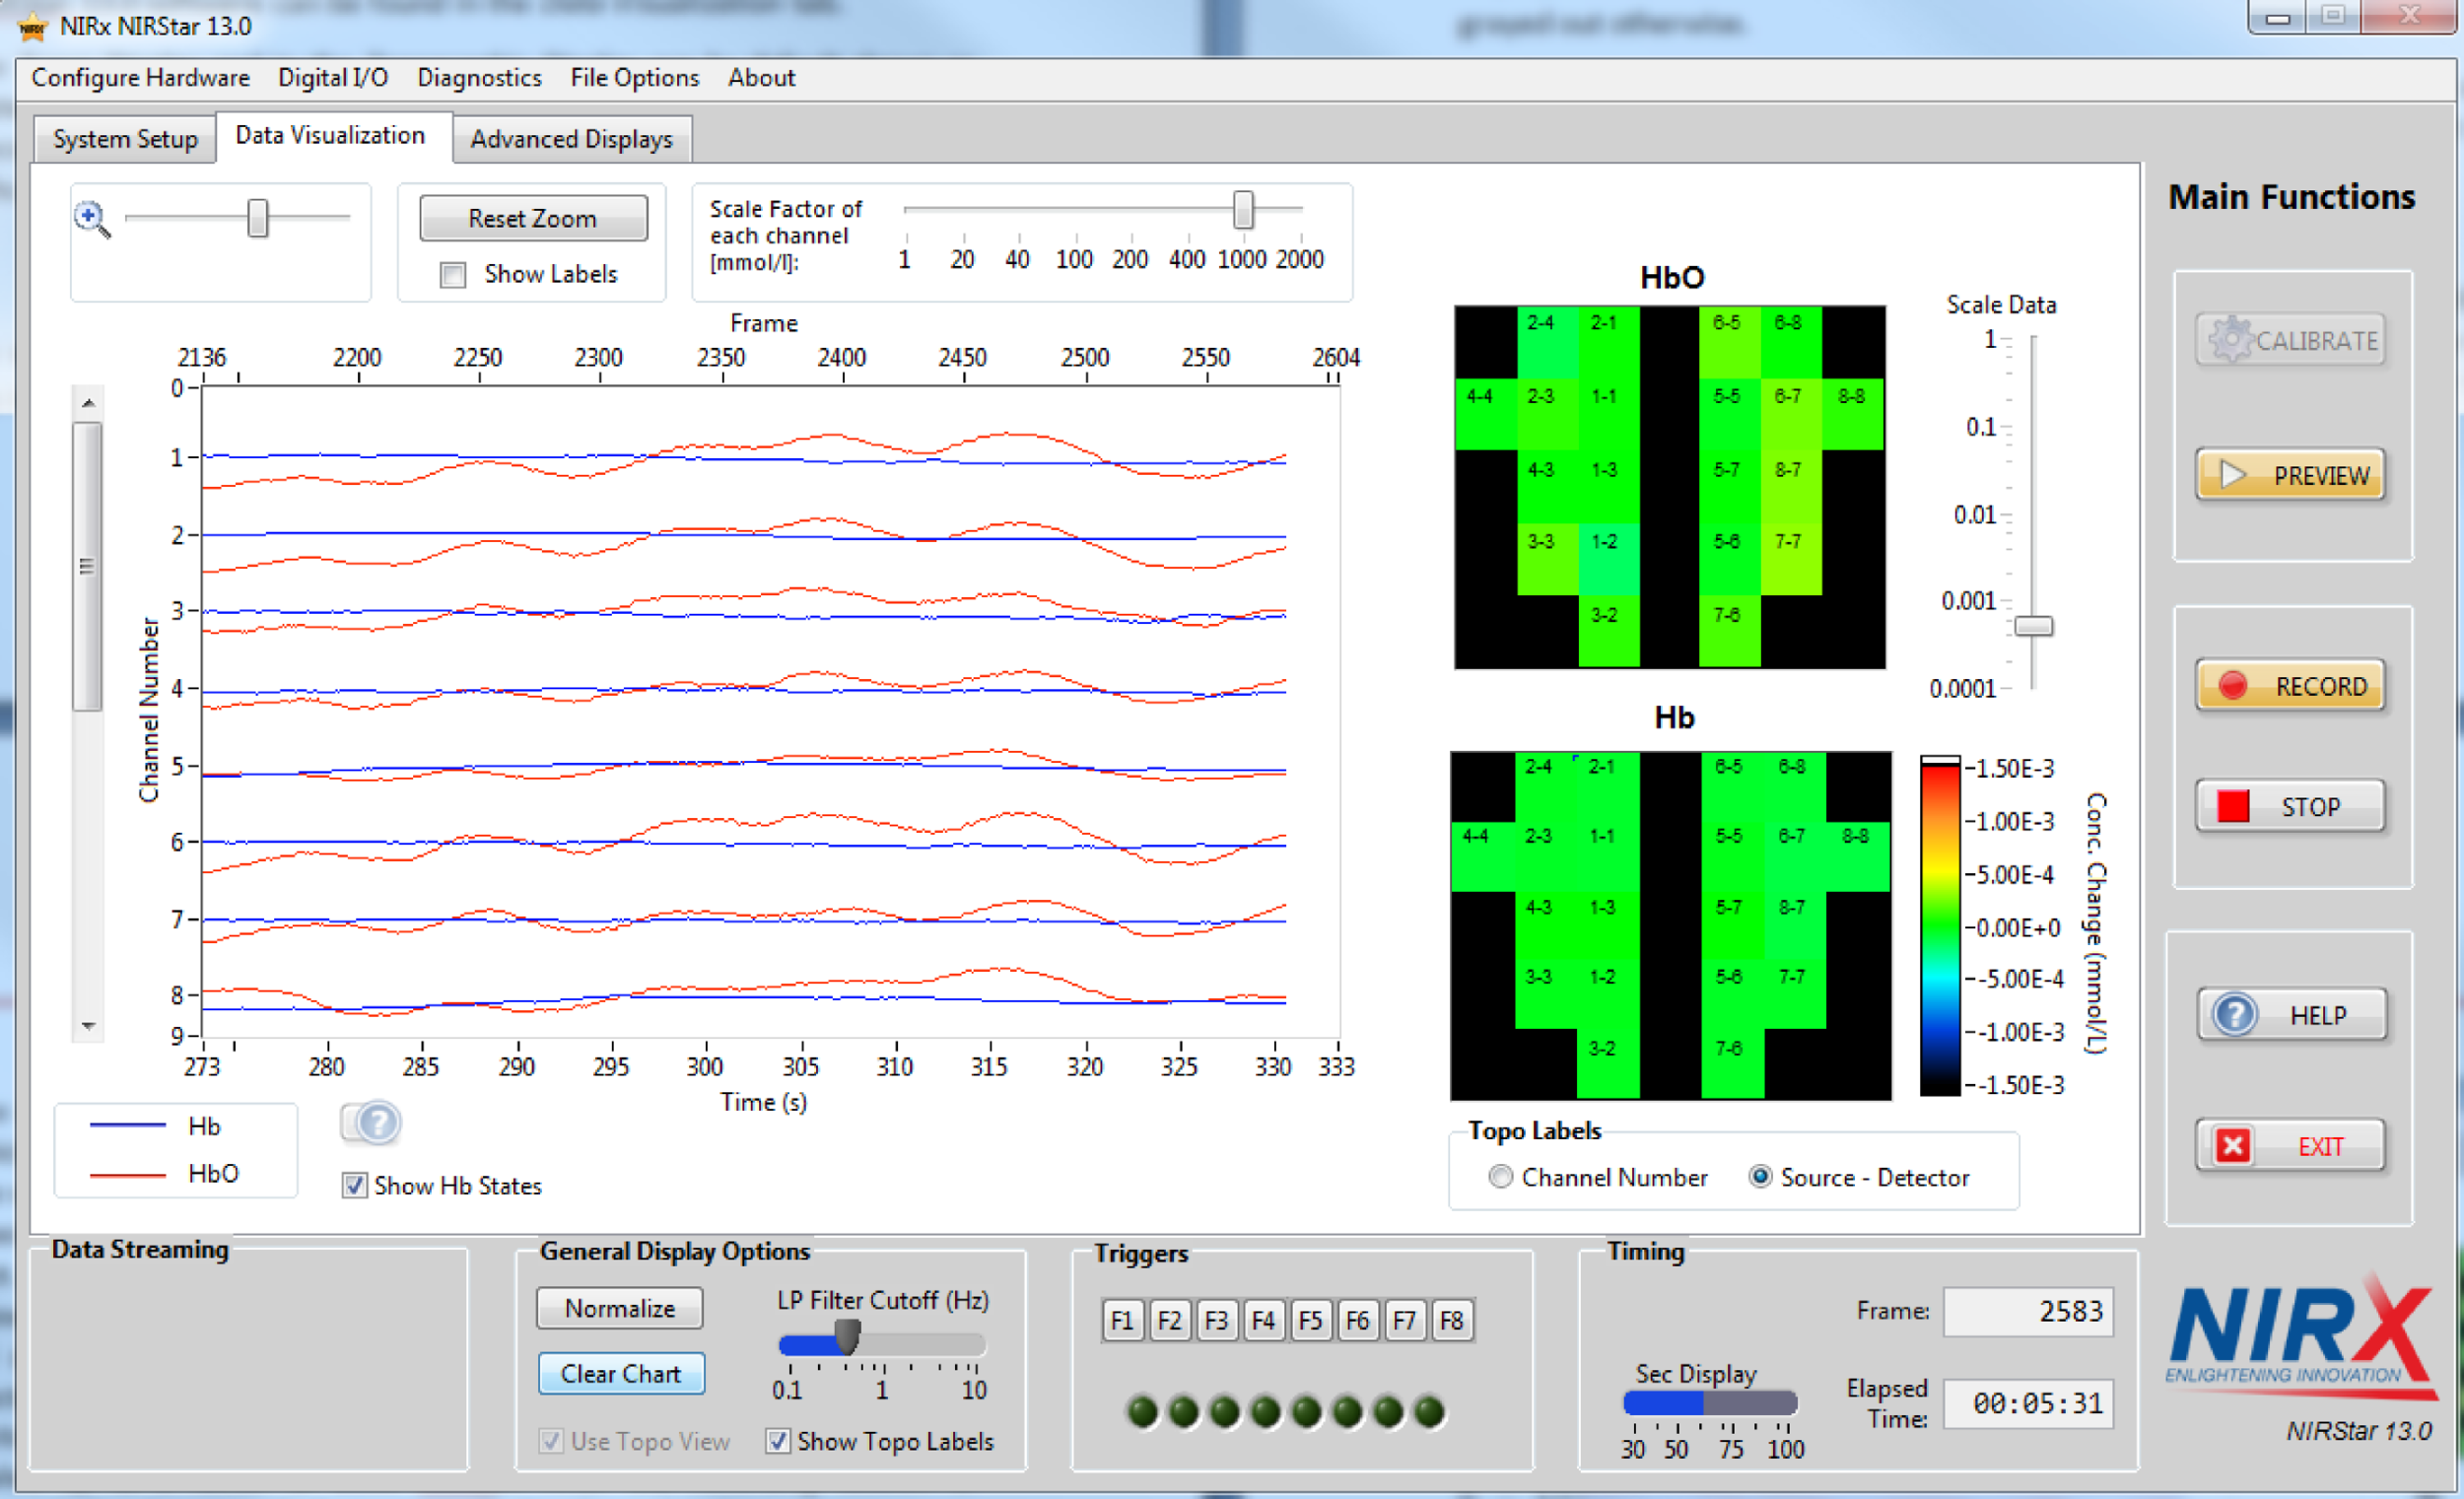 NIRS NIRStar Topomaps and data viewer.png